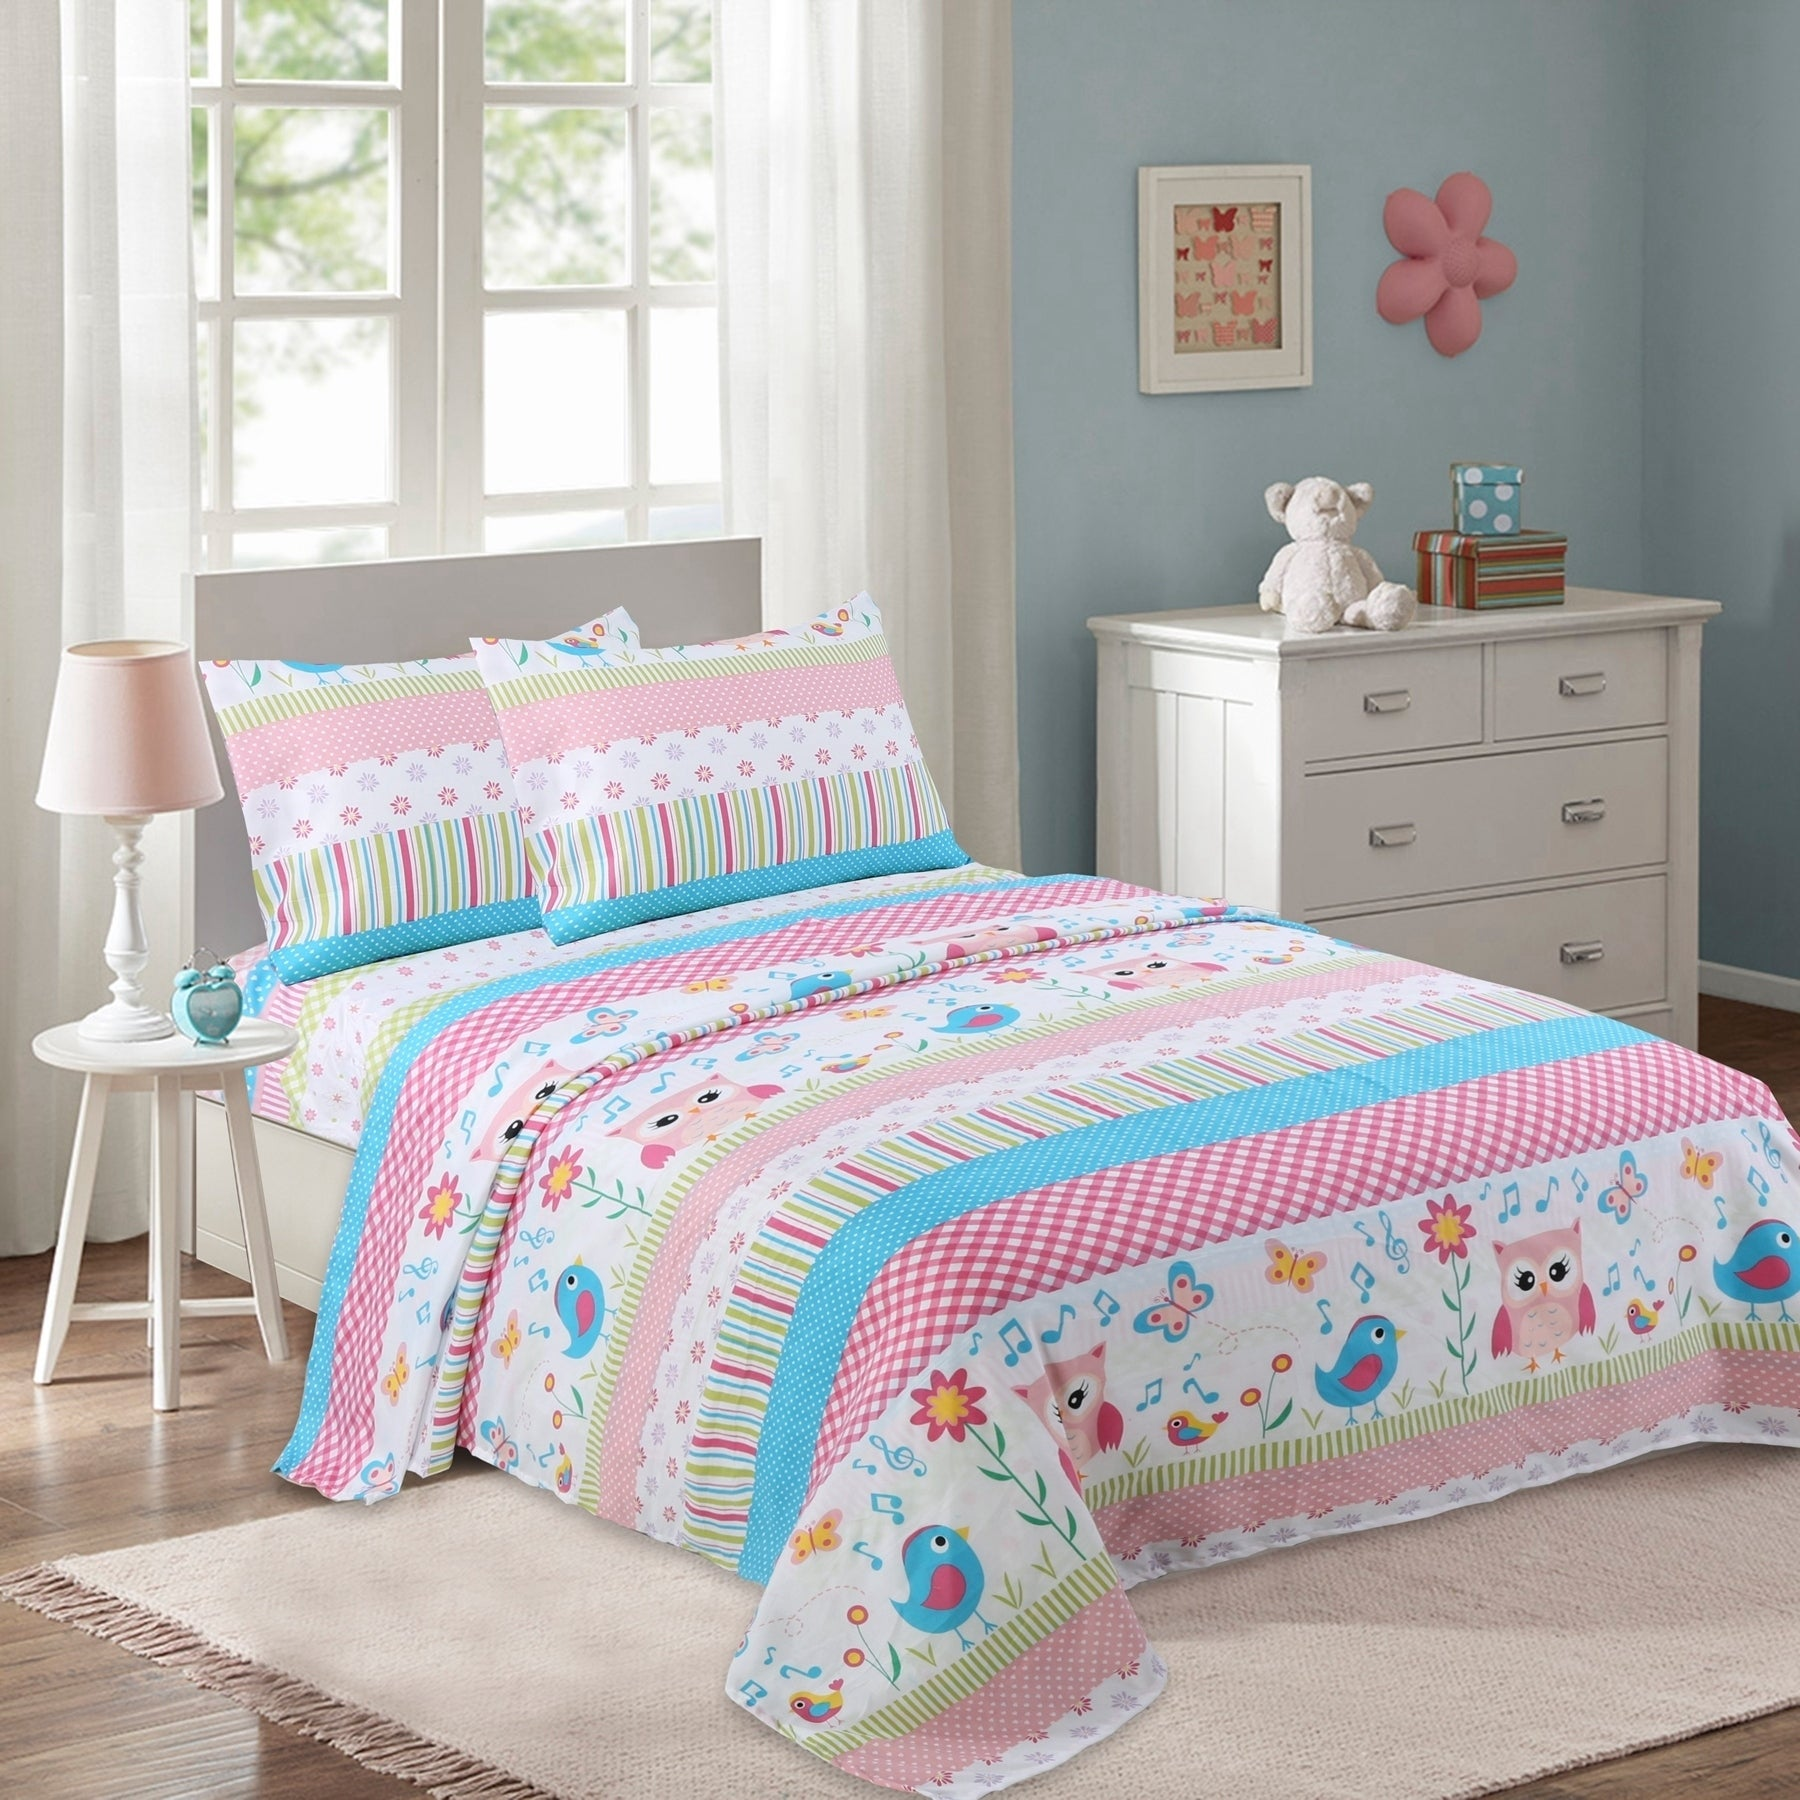 Twin Flannel Sheets Girl Sale Off 70